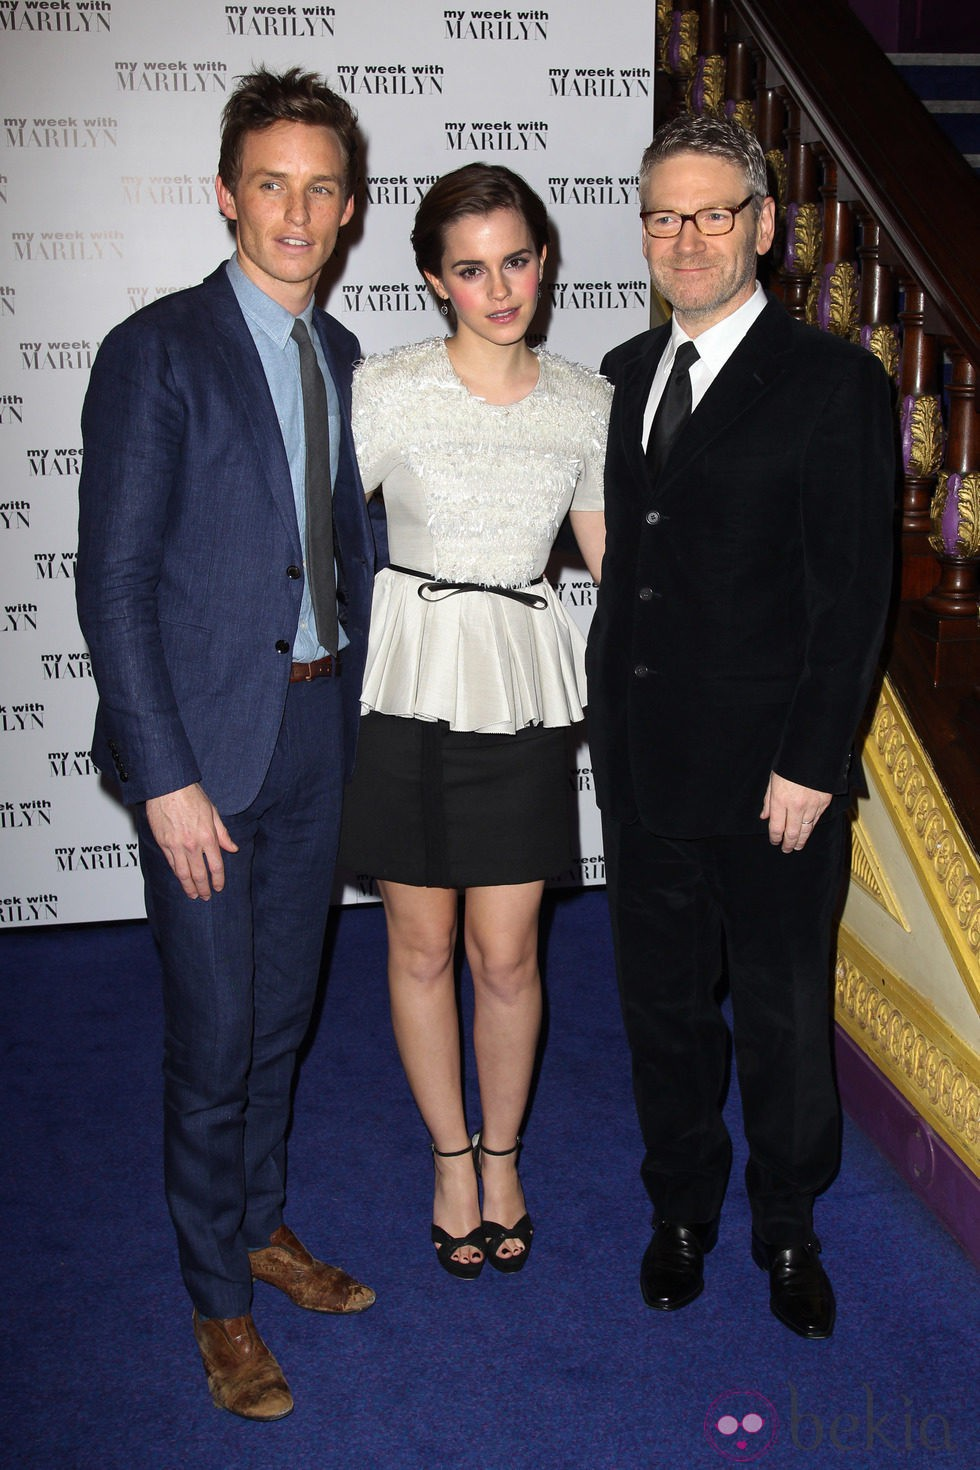 Emma Watson, Eddie Redmayne y Kenneth Branagh estrenan 'My week with Marilyn' en Londres